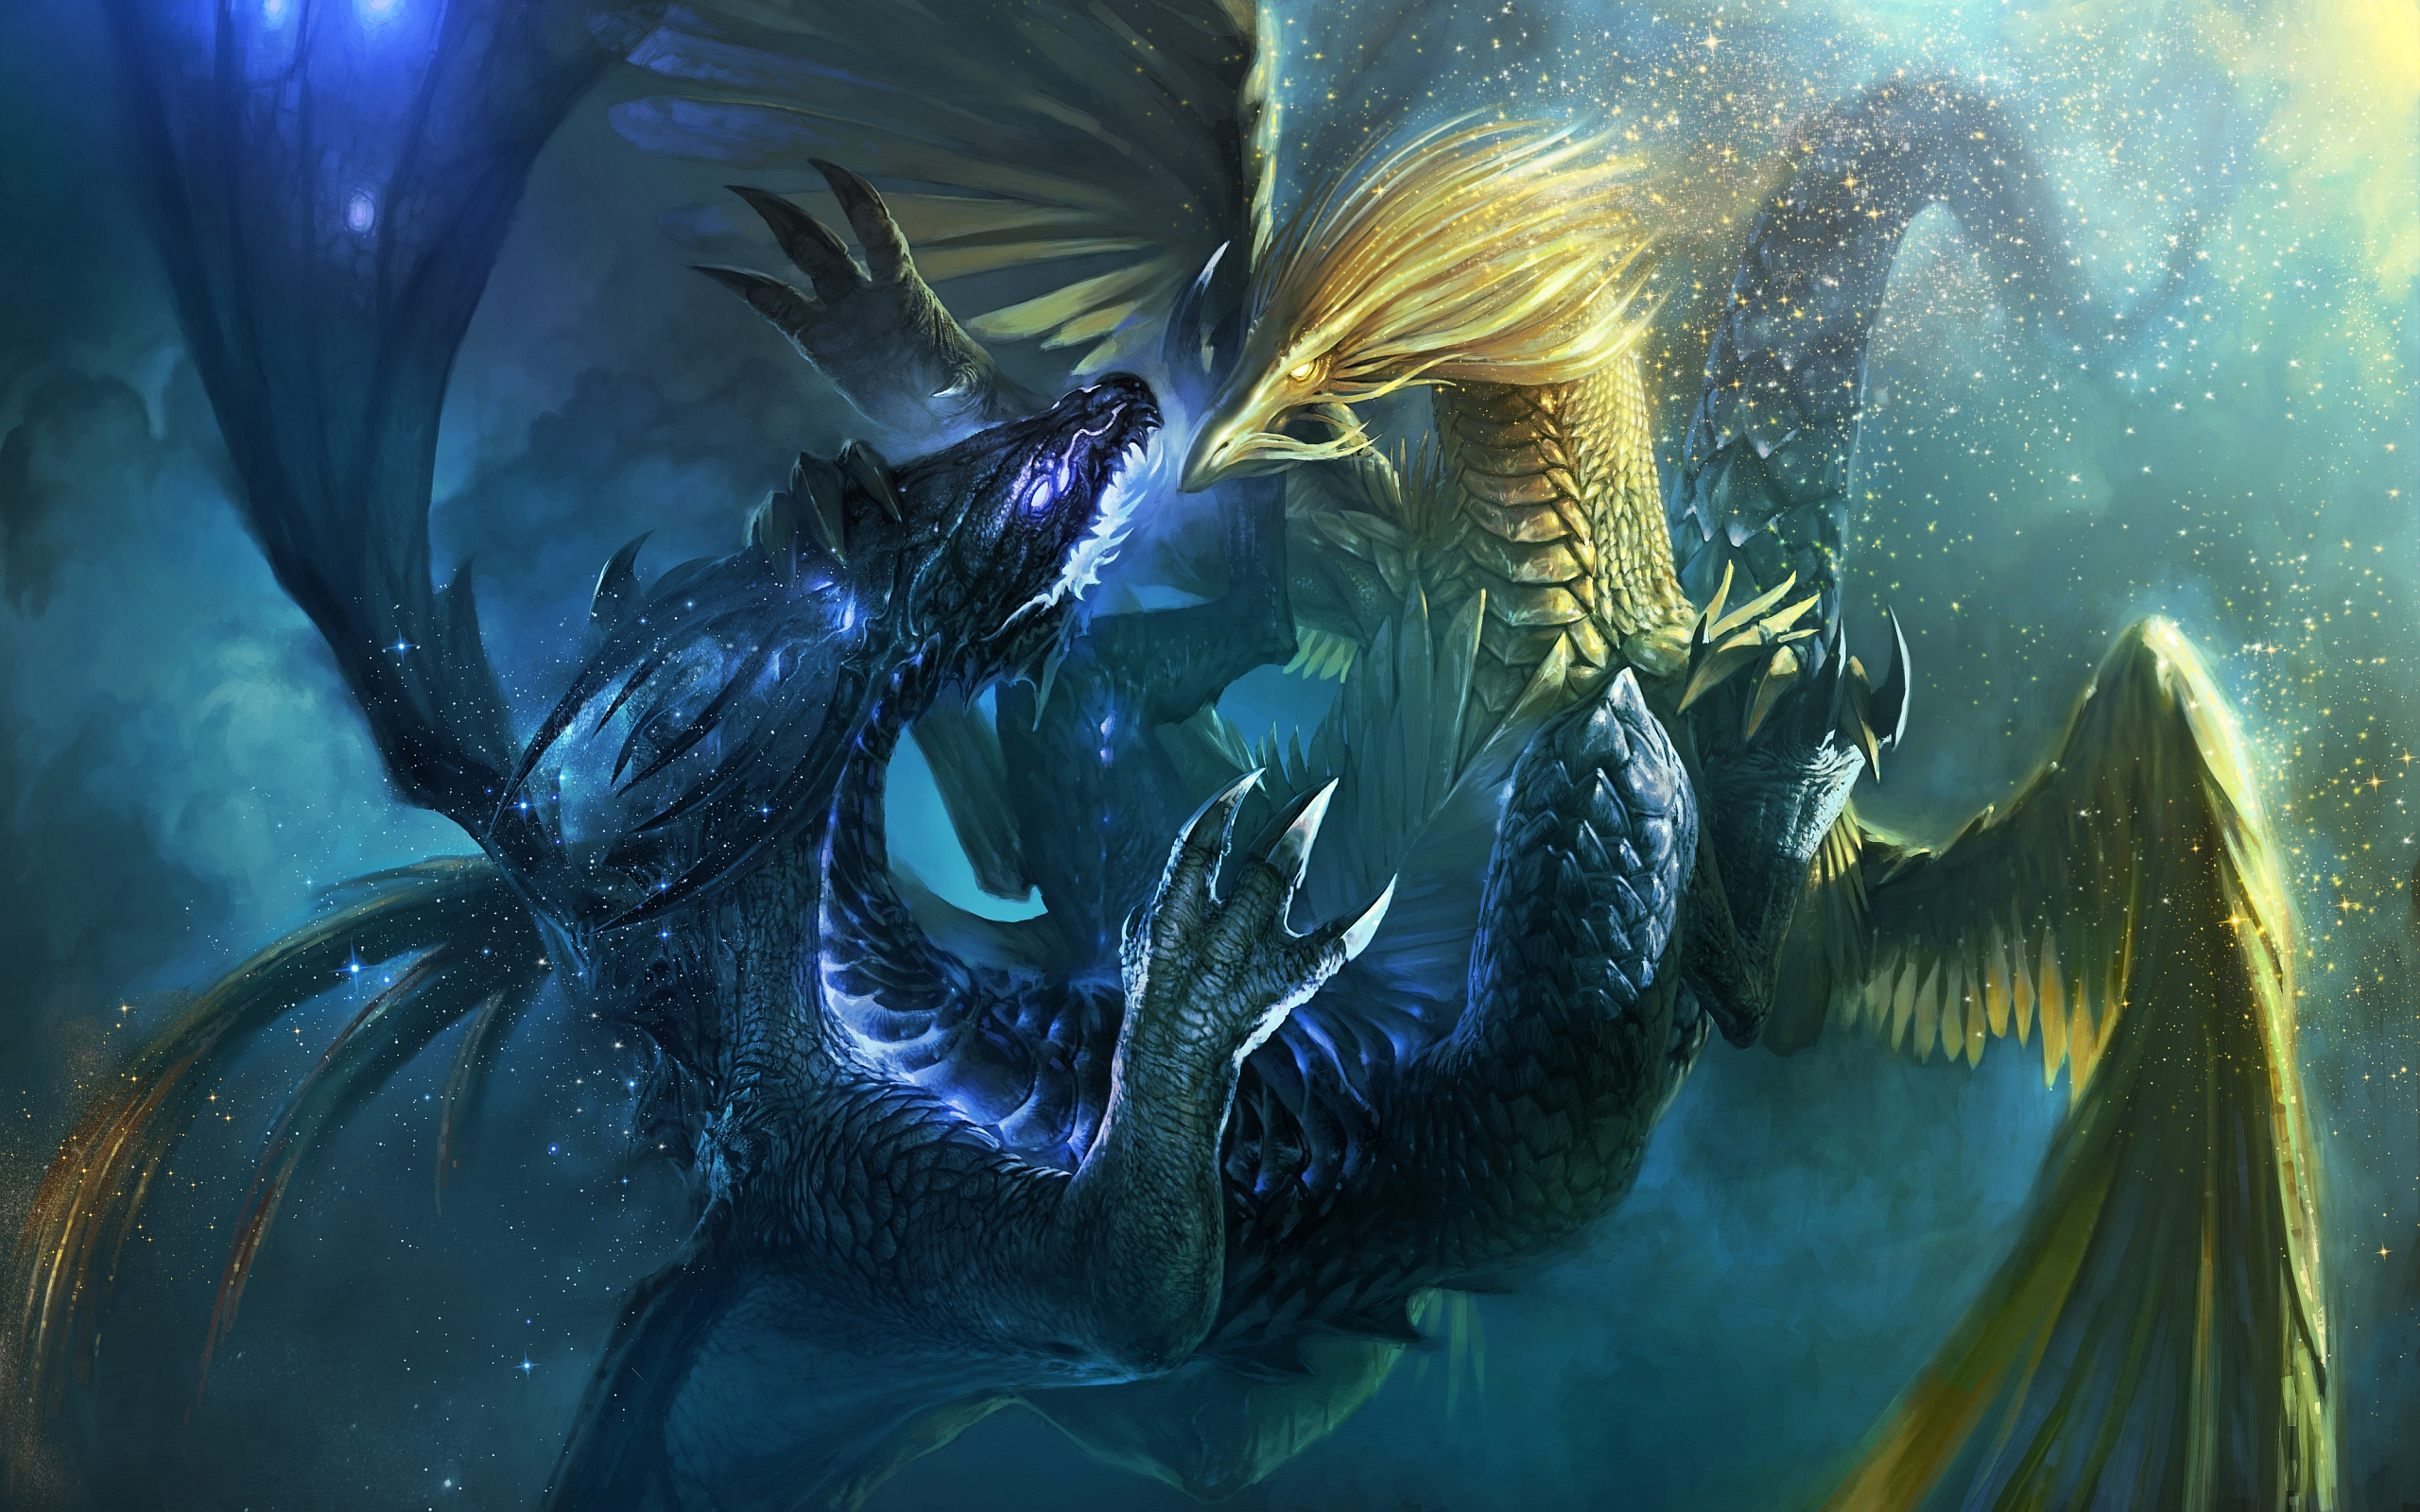 Dragon hd wallpaper background image 2560x1600 id 255080 wallpaper abyss - Dragon backgrounds ...